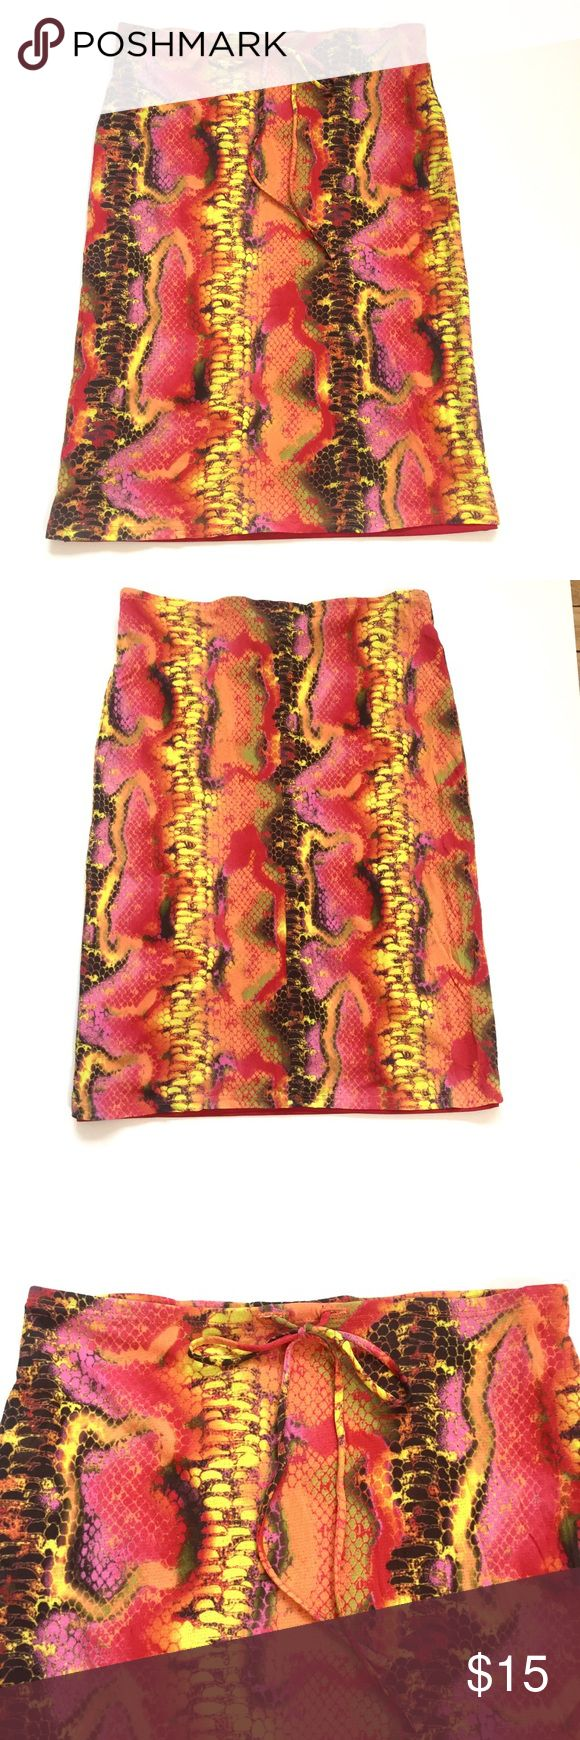 """To The Max Sleek Pencil Skirt -Size small -Colorful snake skin print -Elastic waist, pull on style -Lined -Matching tie at waist -Waist: 15"""" -Length: 23"""" -No rips, tears, stains or holes -Smoke free household To the Max Skirts Pencil"""